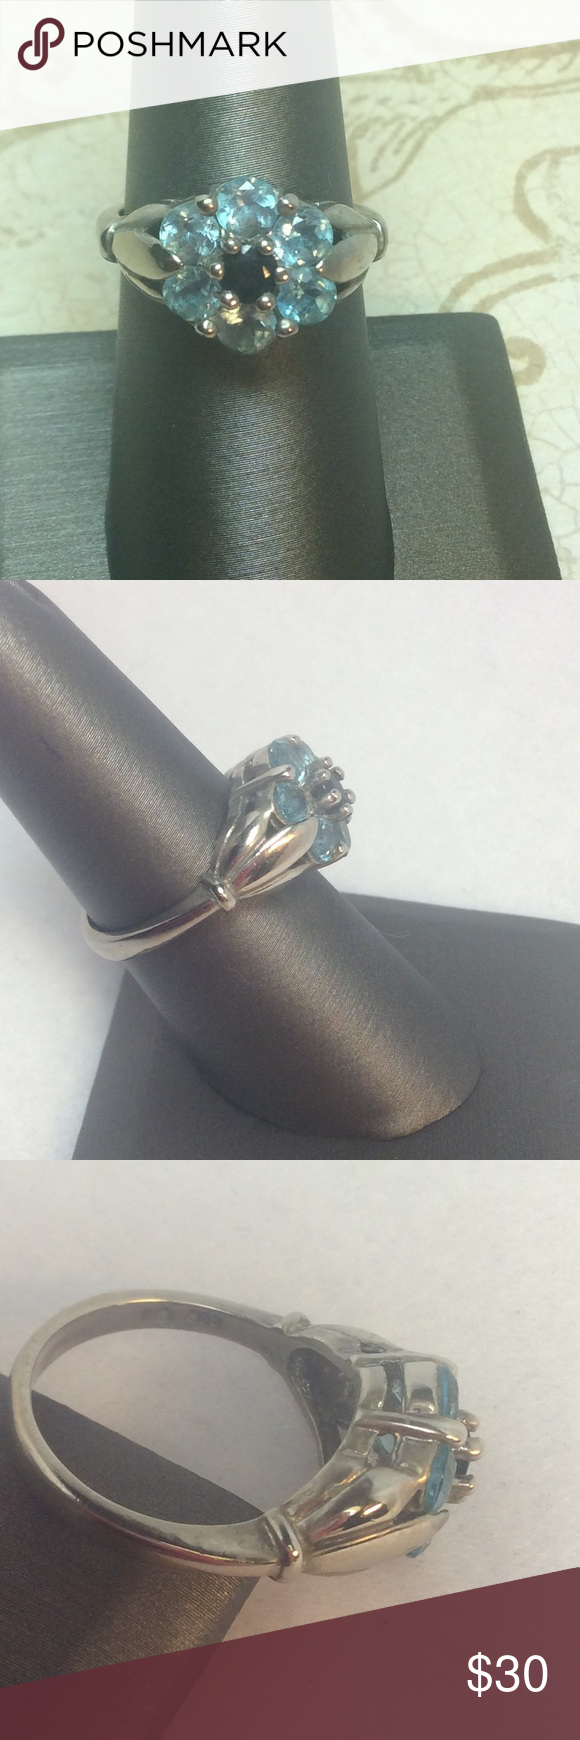 Sterling Genuine Blue Topaz & Sapphire Flower Ring This beautiful blue flower bursts into bloom before your very eyes!  Sterling ring mounting has sculpted opening pod on each side of the flower which reveals this lovely bloom.  Bright blue topaz stones with exceptional clarity form the petals of the flower which surrounds the dark blue sapphire center.  So pretty!  Gently loved.  Excellent used condition. Unlisted Jewelry Rings